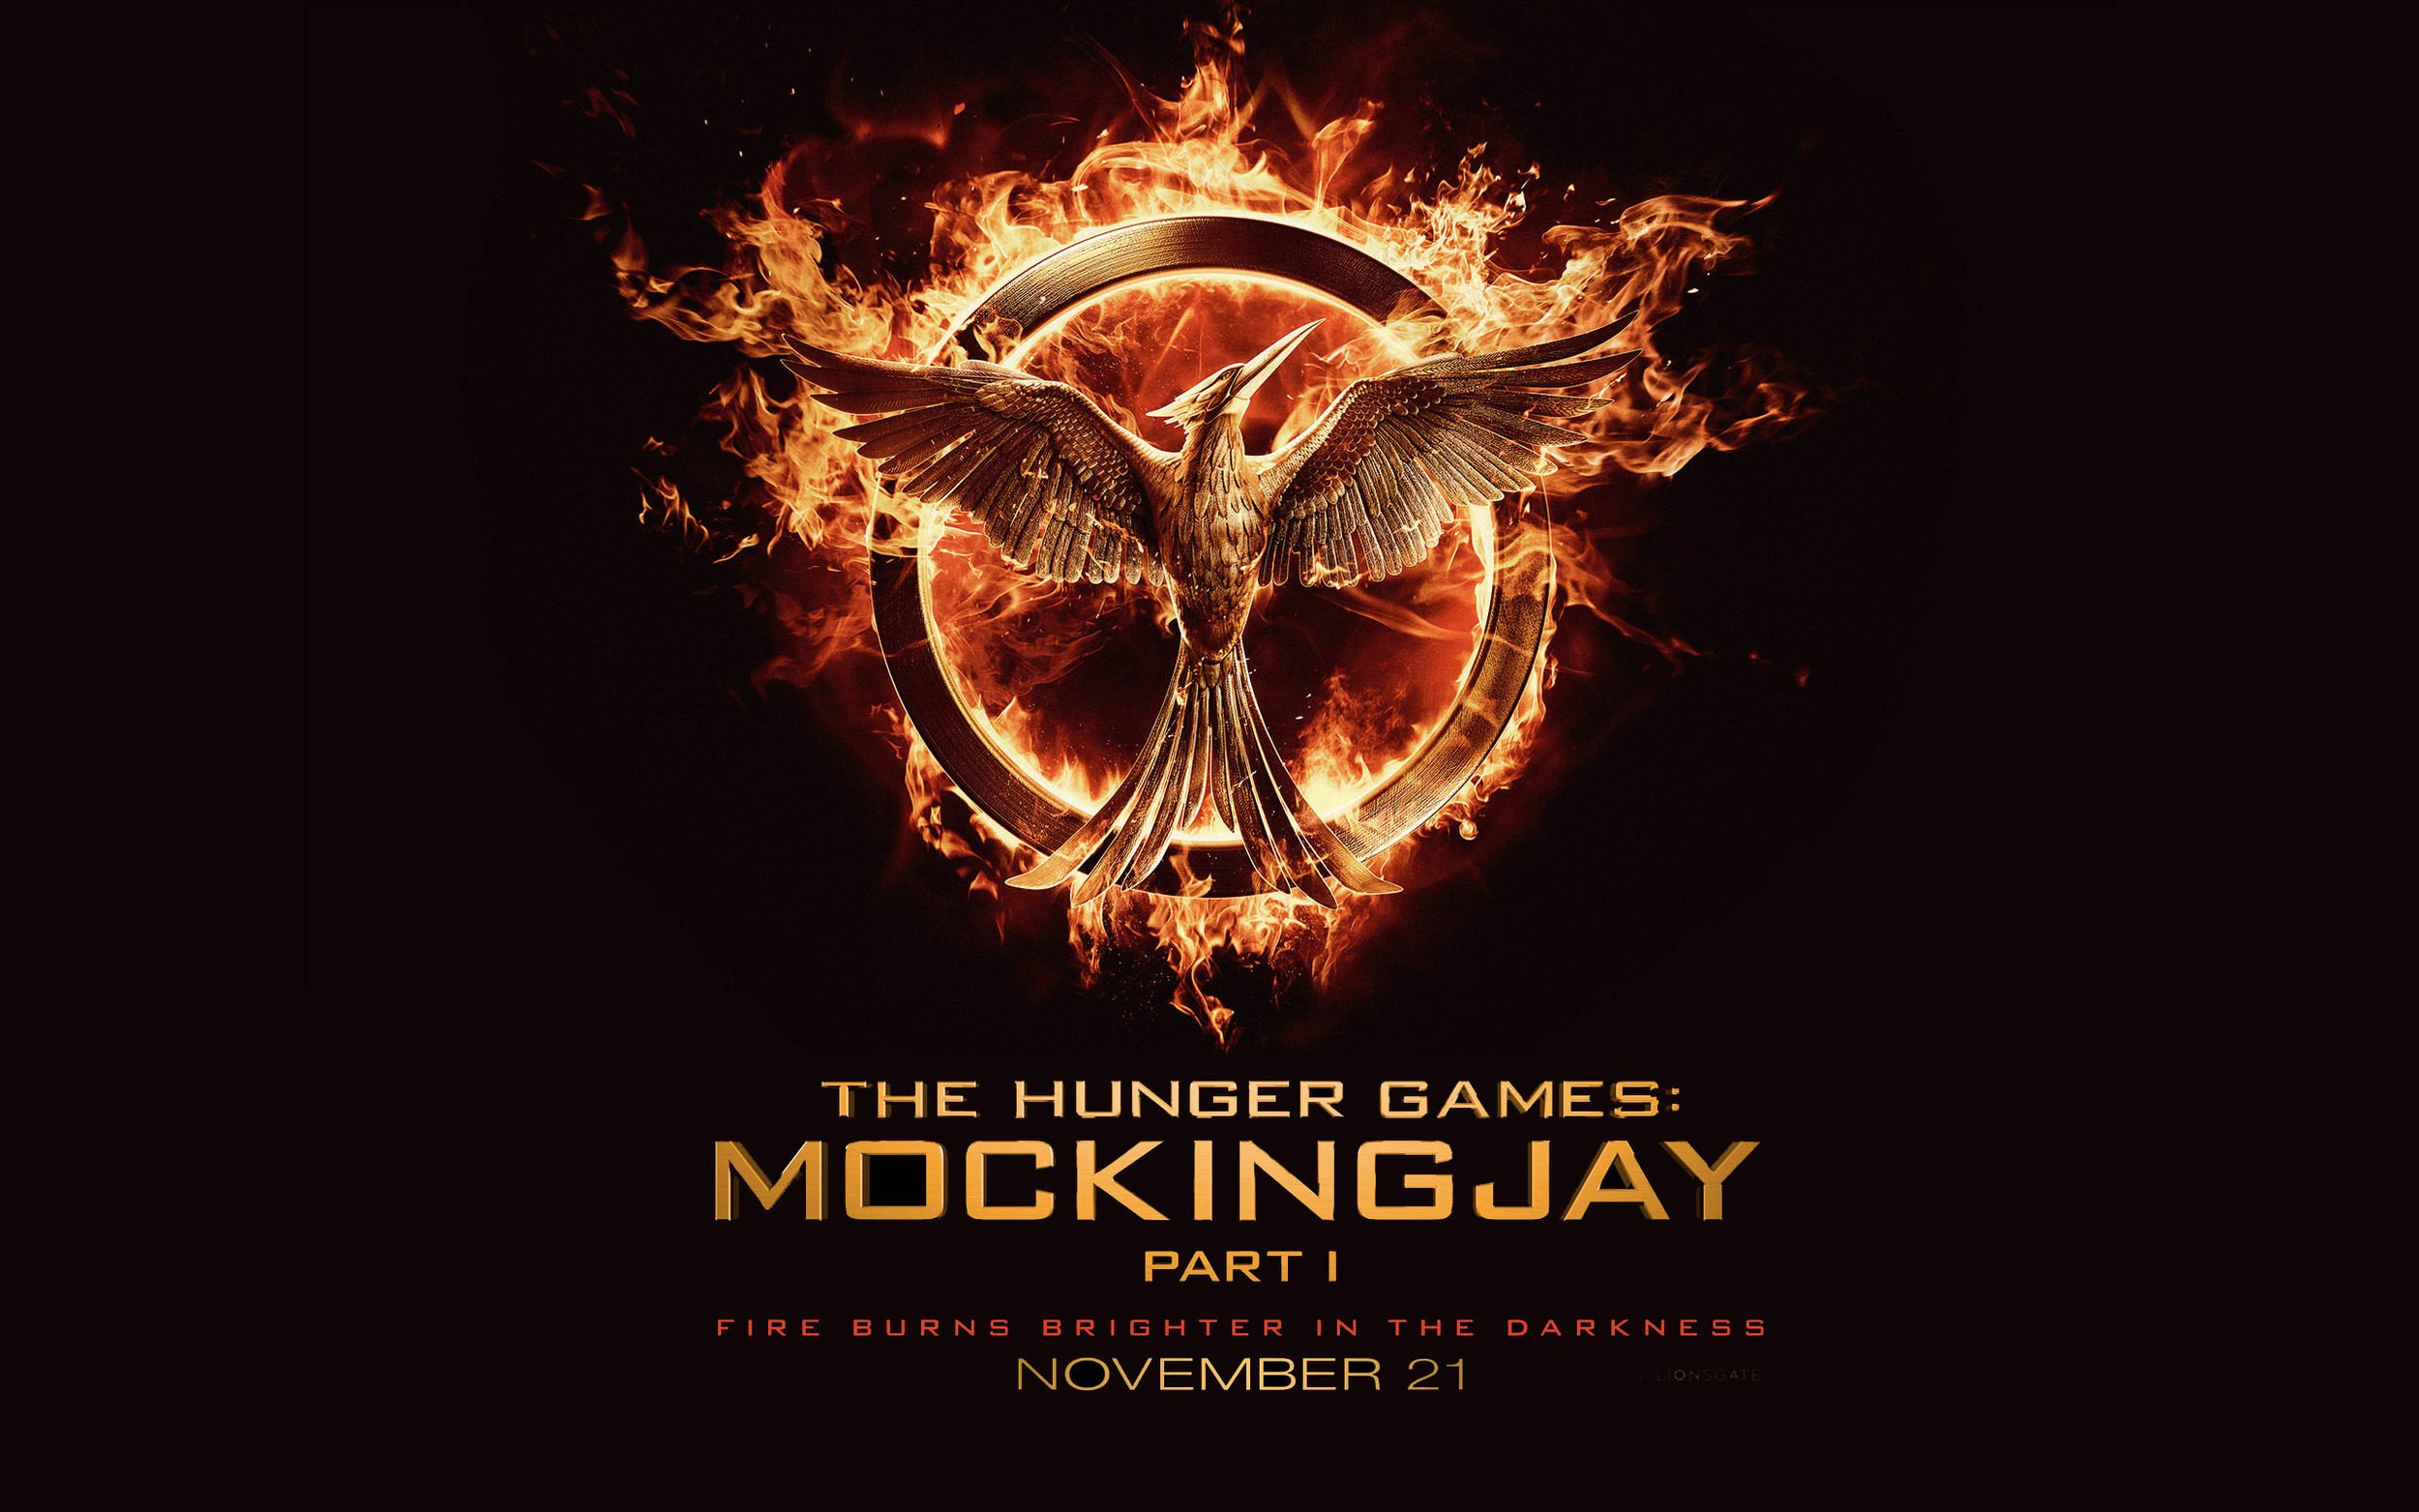 the-hunger-games-mockingjay-part-one-poster-hd-wallpaper.jpg